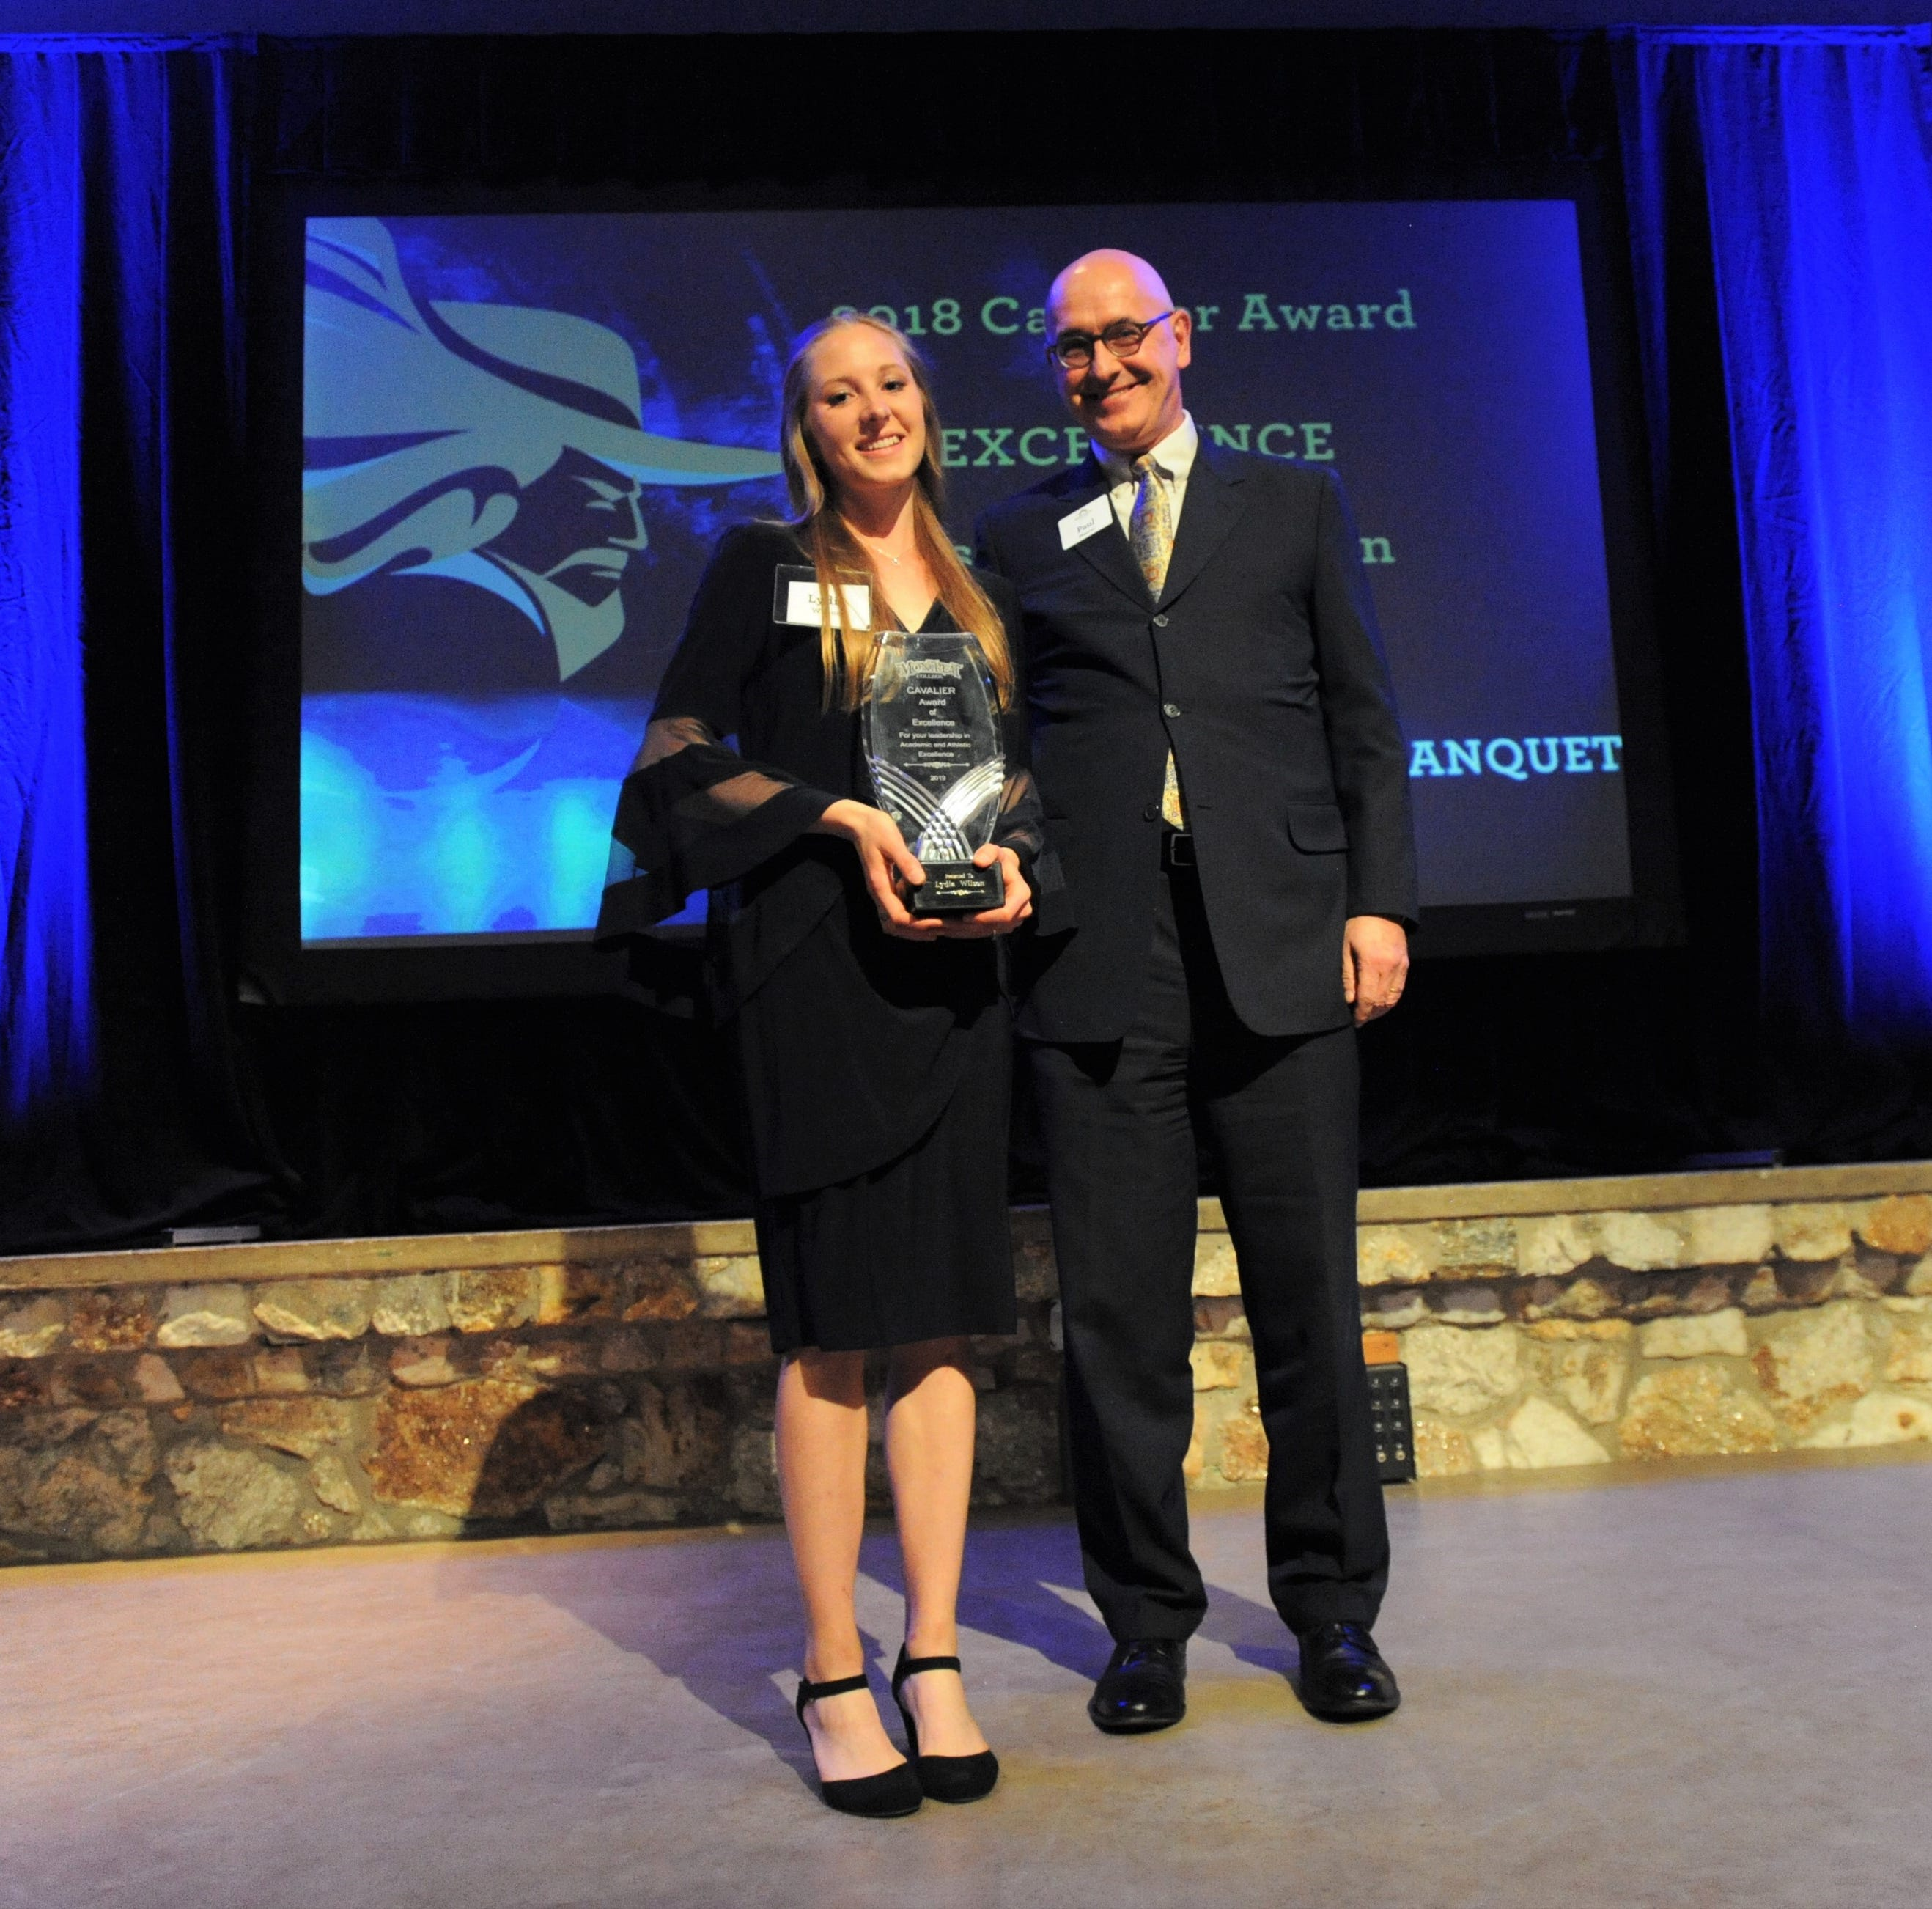 Montreat recognizes 'gold standard' with Cavalier Award of Excellence